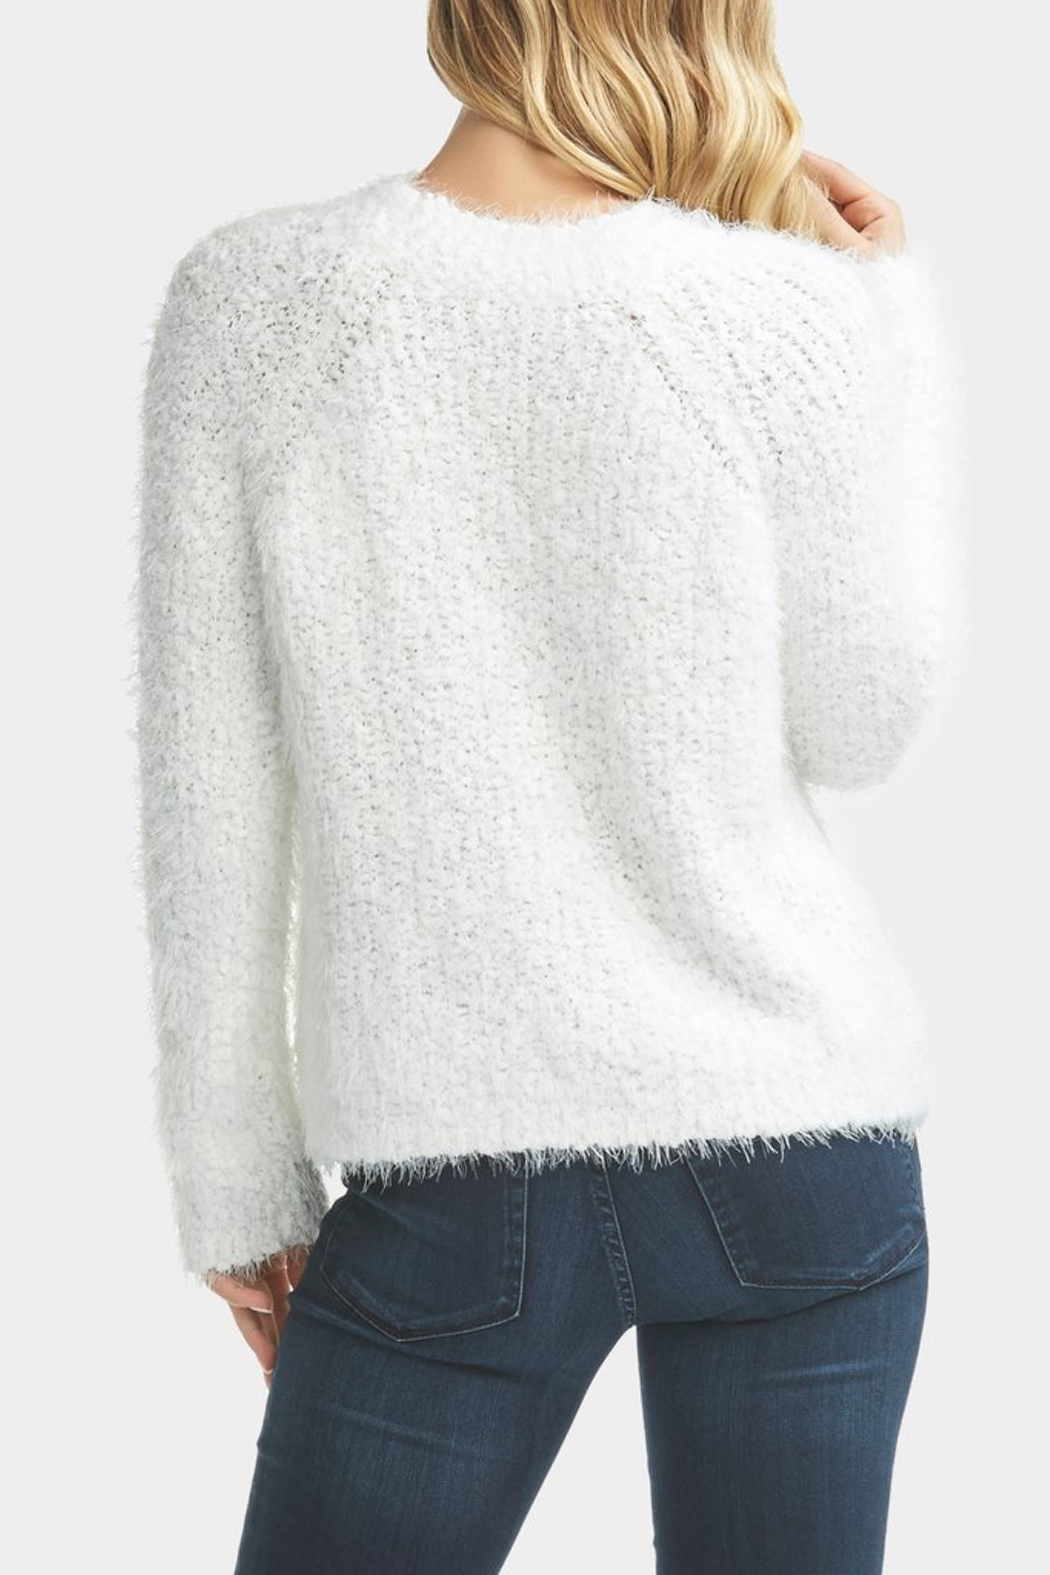 Tart Collections Delisa Sweater - Back Cropped Image